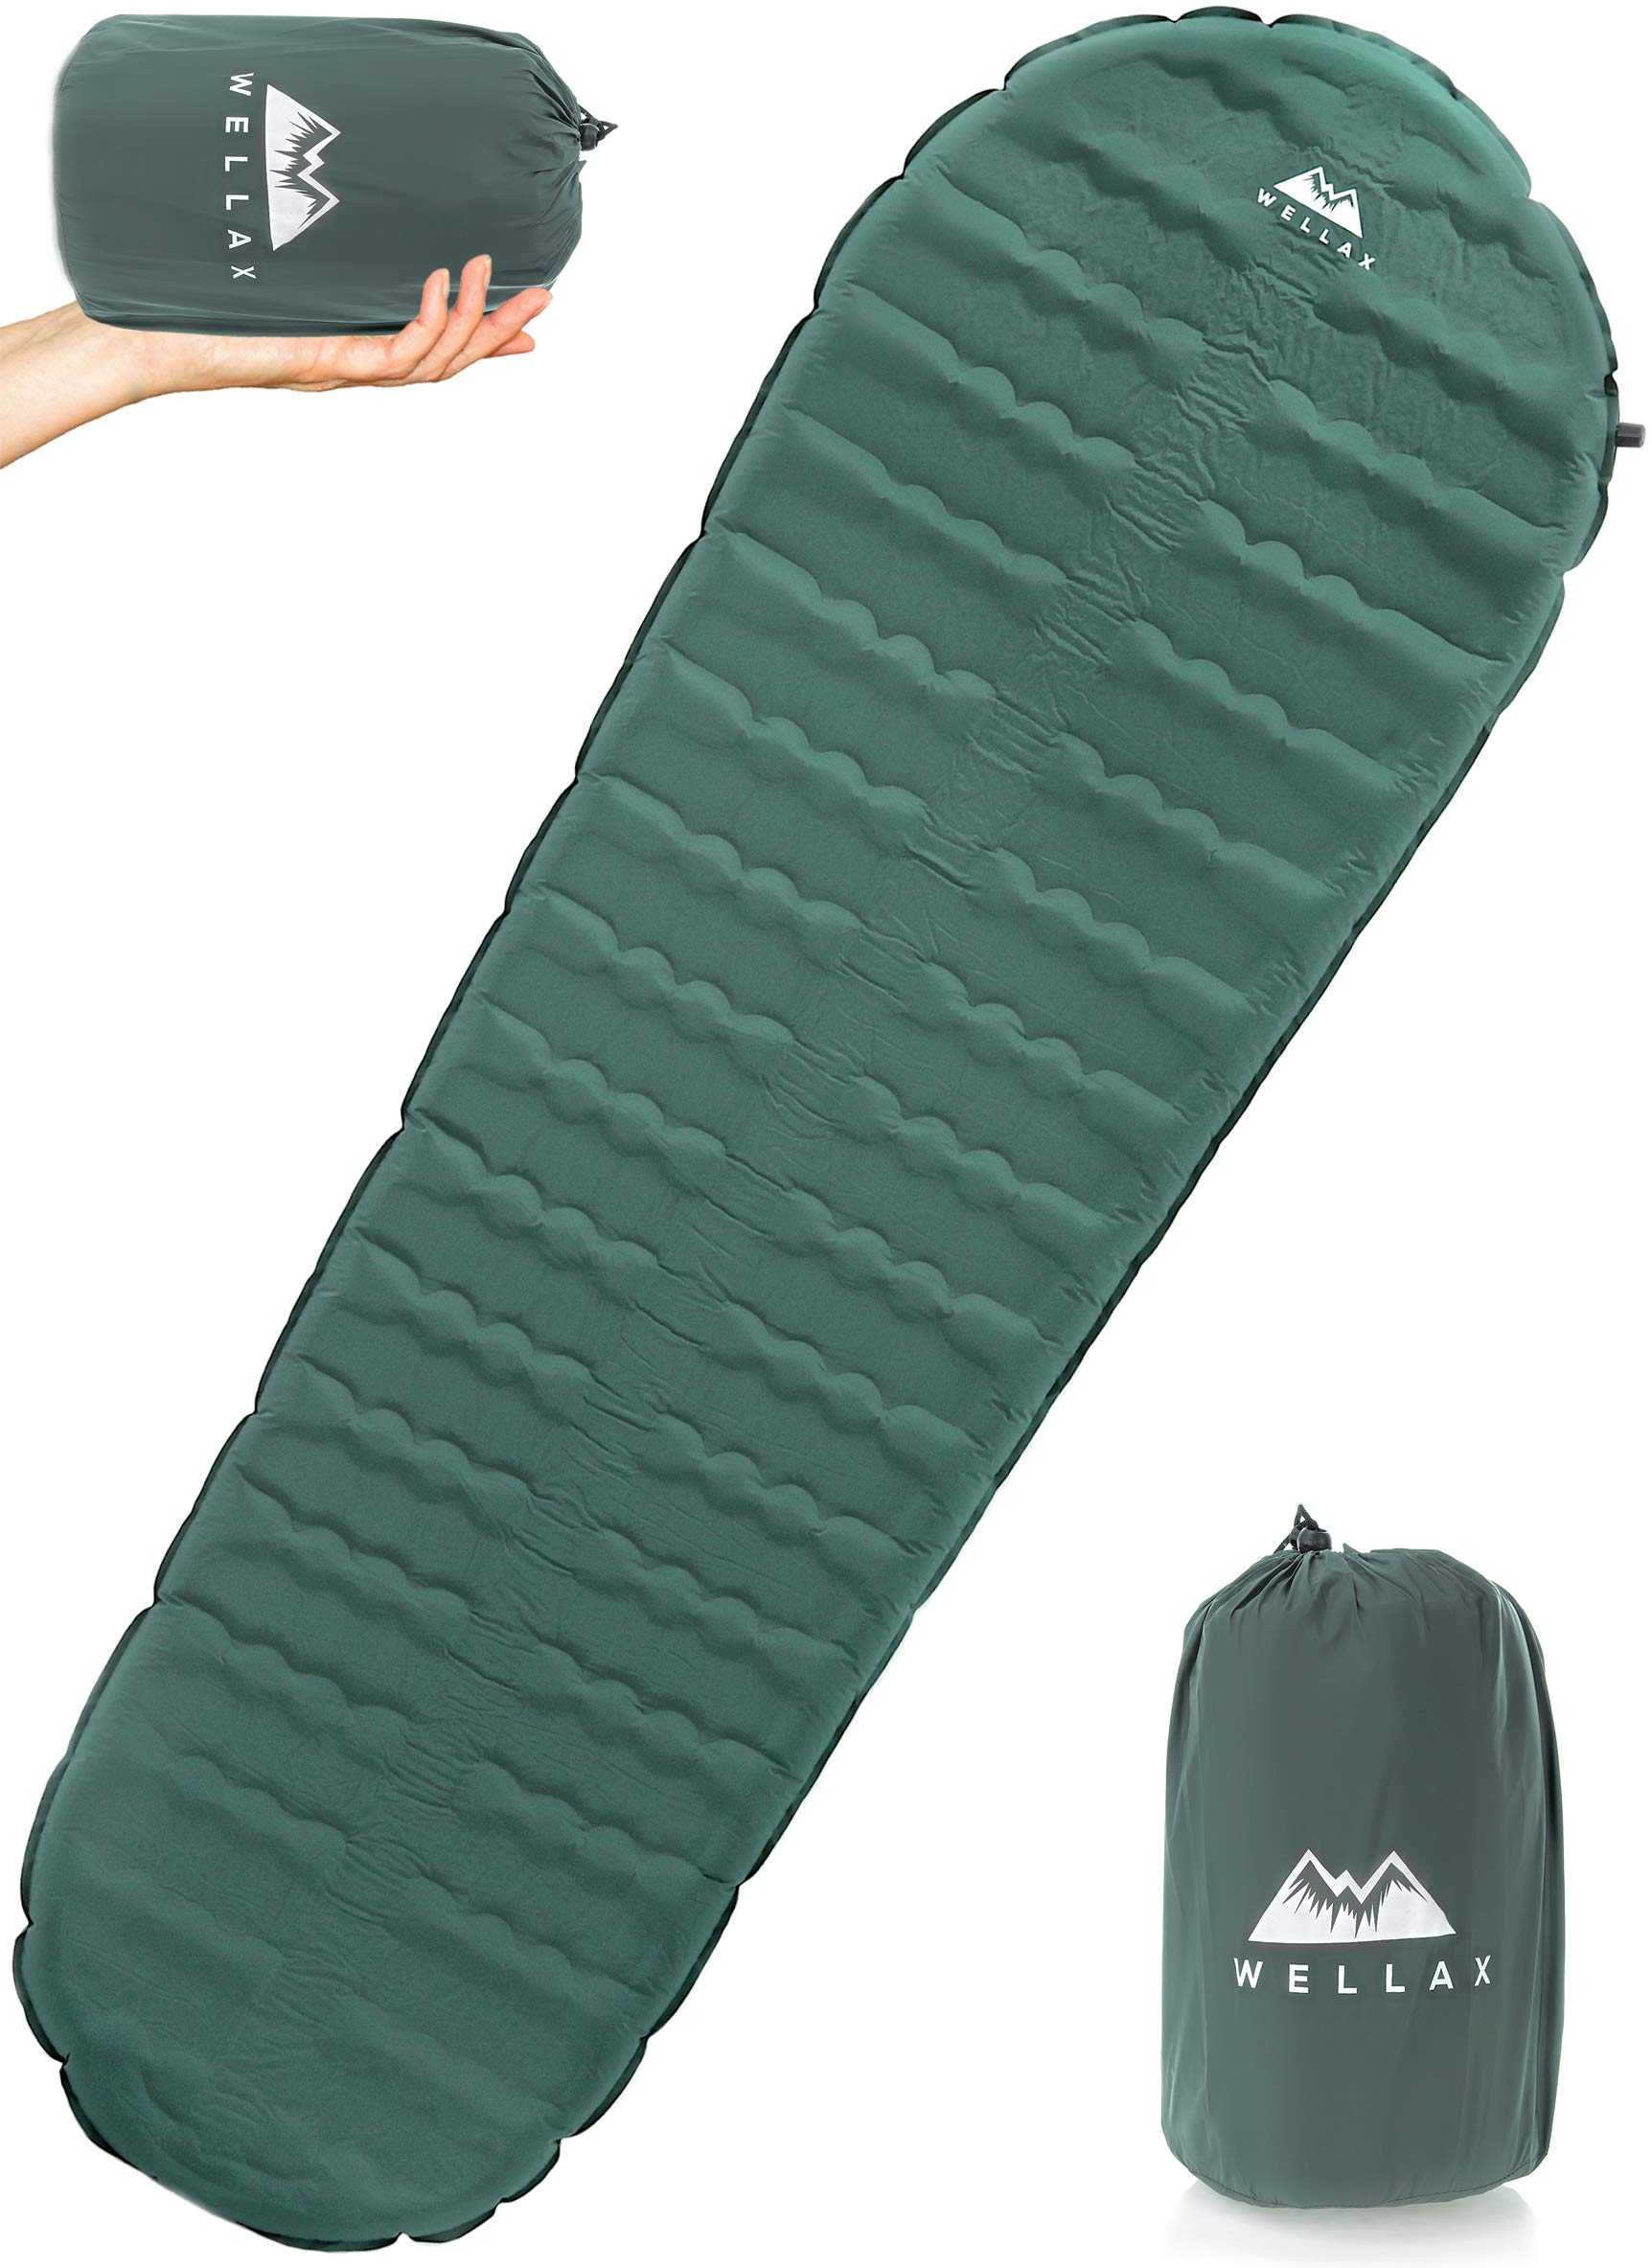 WELLAX Ultralight Self Inflating Sleeping Pad for Camping - Best Inflatable Camping Mat for Backpacking, Traveling and Hiking - Hybrid Camp Mattress with Foam Frame (Regular - 70 x 20 x 2.5 inches) by WELLAX